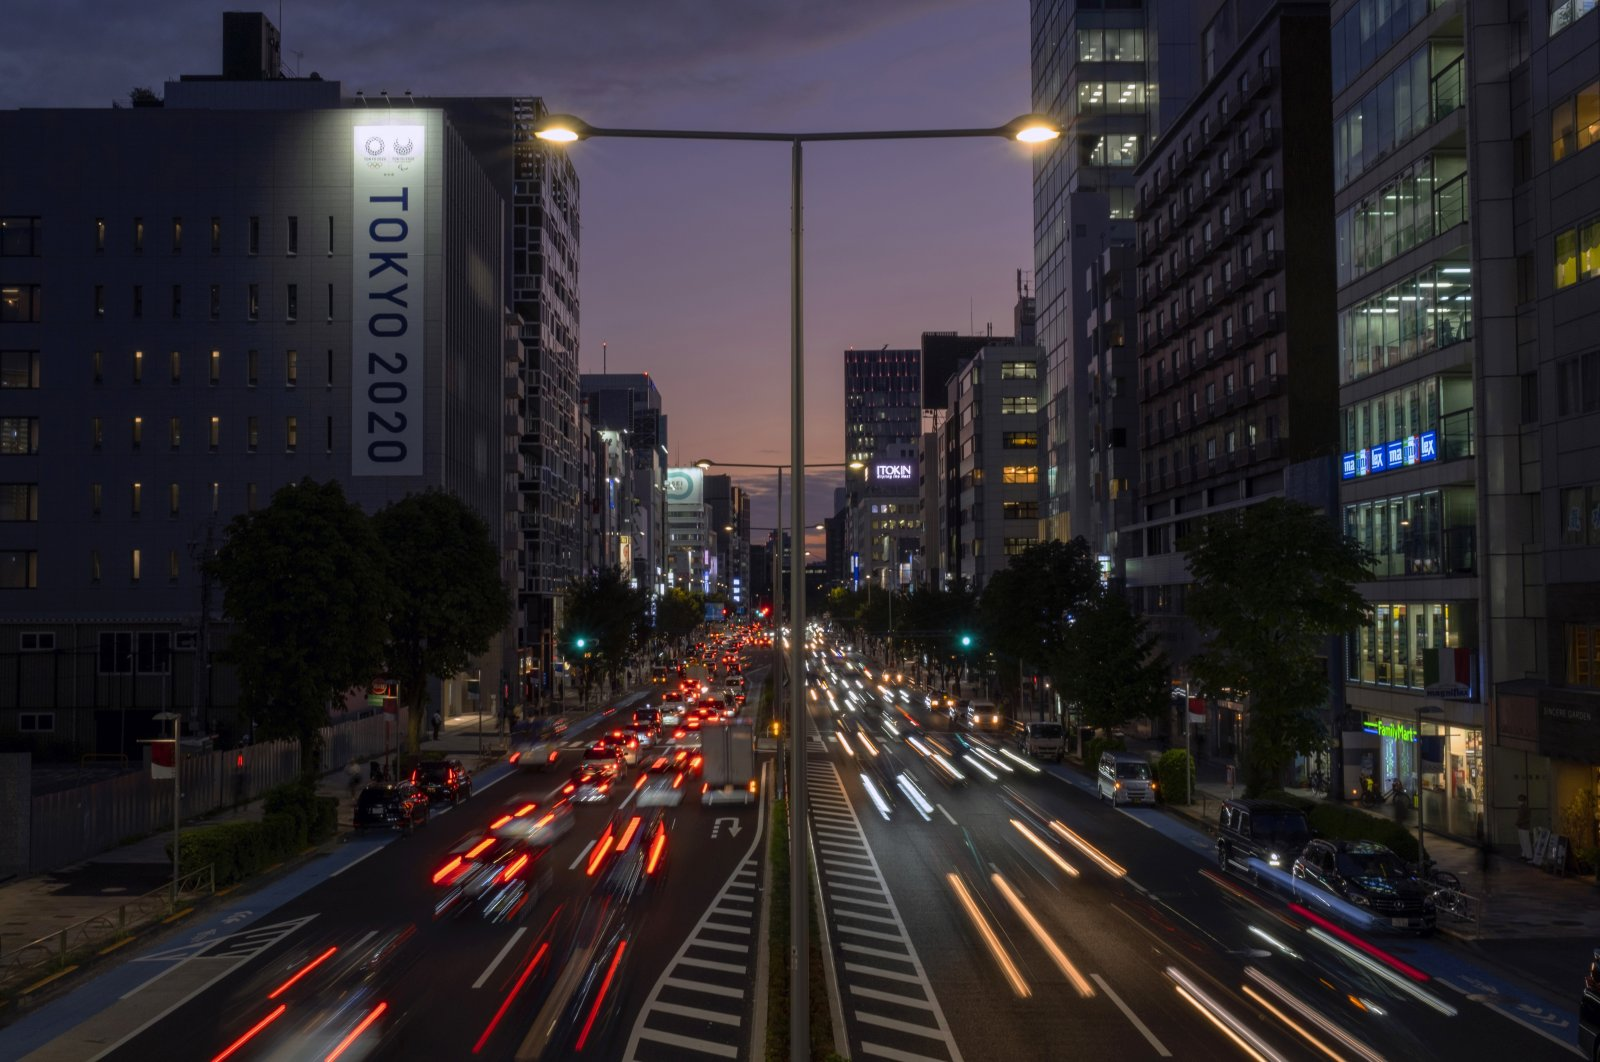 This long exposure photo shows streaks of lights from the cars passing by a Tokyo 2020 Olympics and Paralympics sign on the side of a building in Tokyo, as the sky is colored by the sunset, Oct. 12, 2020. (AP Photo / Kiichiro Sato)